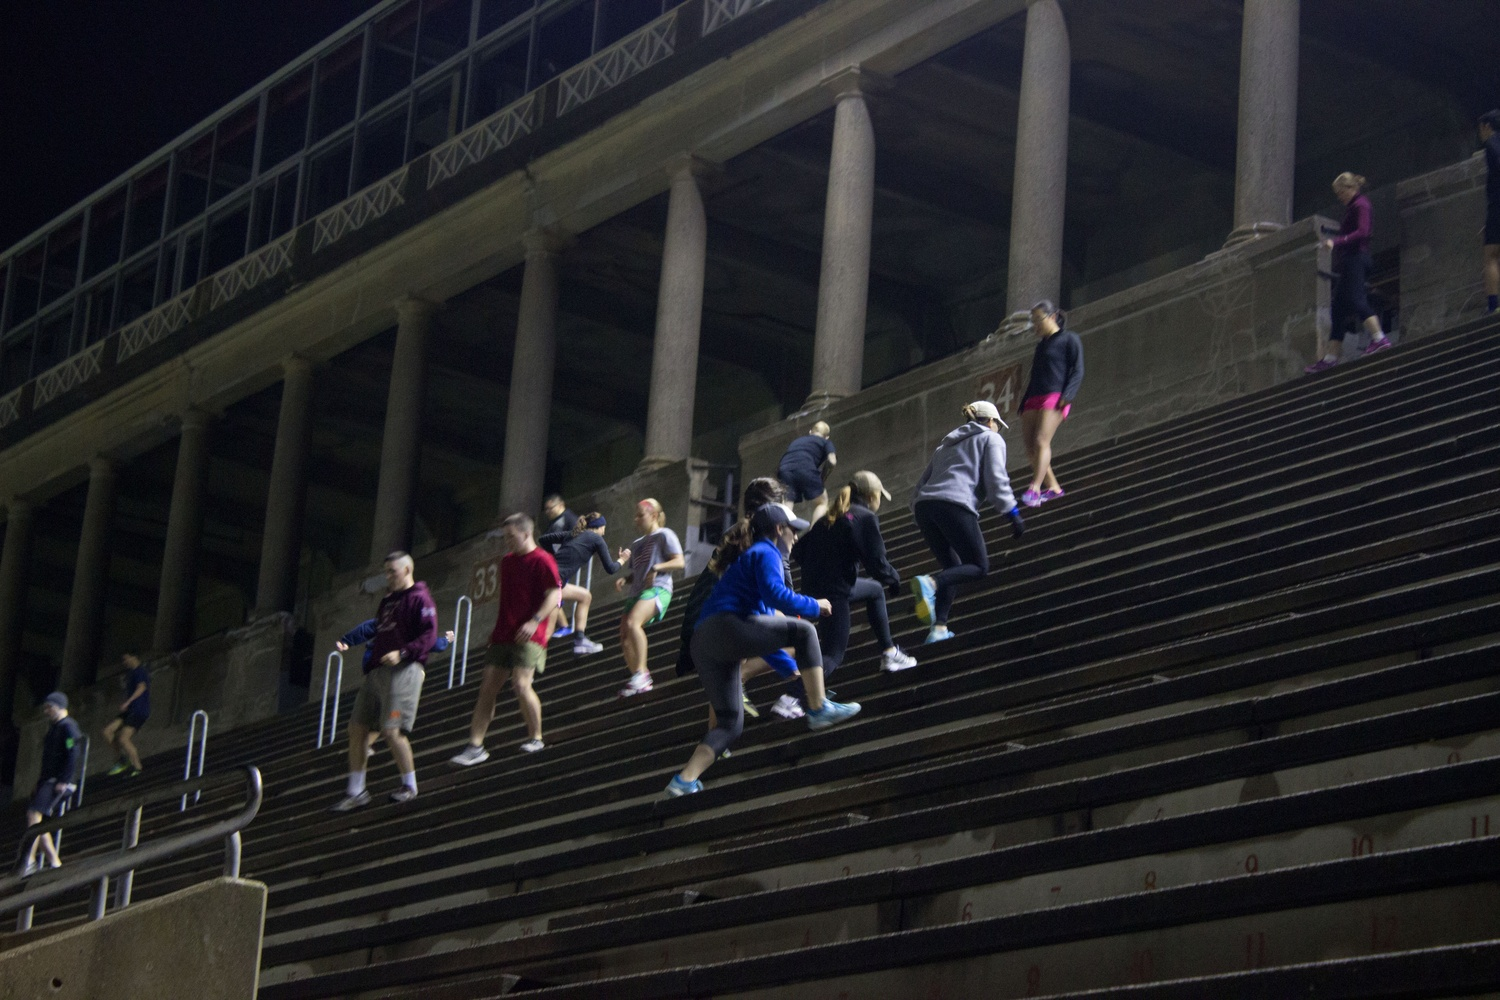 Veterans, students in ROTC, and supportive community members begin running up the steps of Harvard Stadium. They gathered on Veteran's Day to support past and present veterans and raise money for the Warrior Scholar Project.